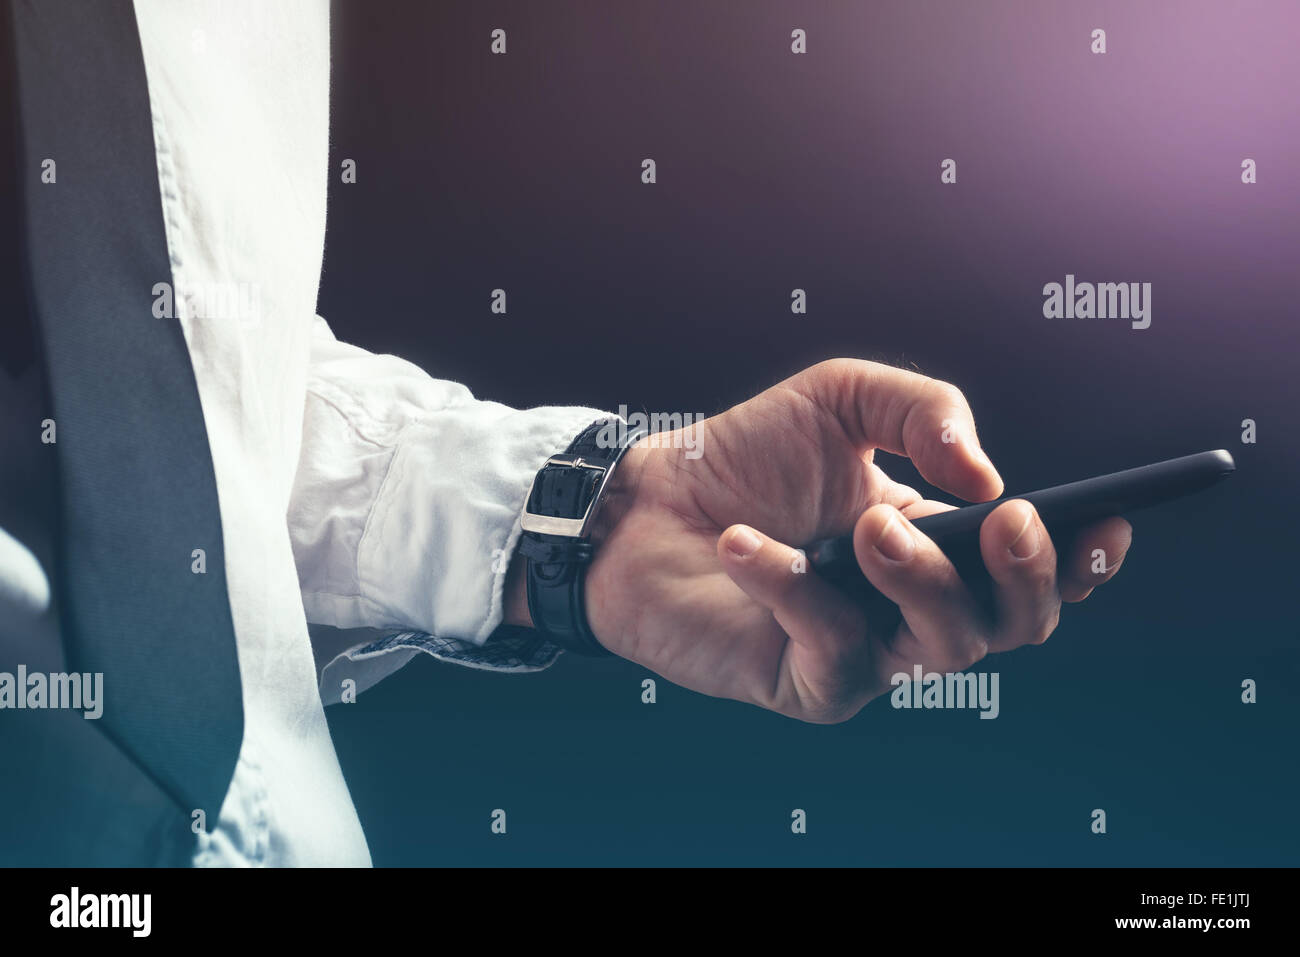 Young unrecognizable businessman professional texting on smartphone using message app in dark office interior. - Stock Image